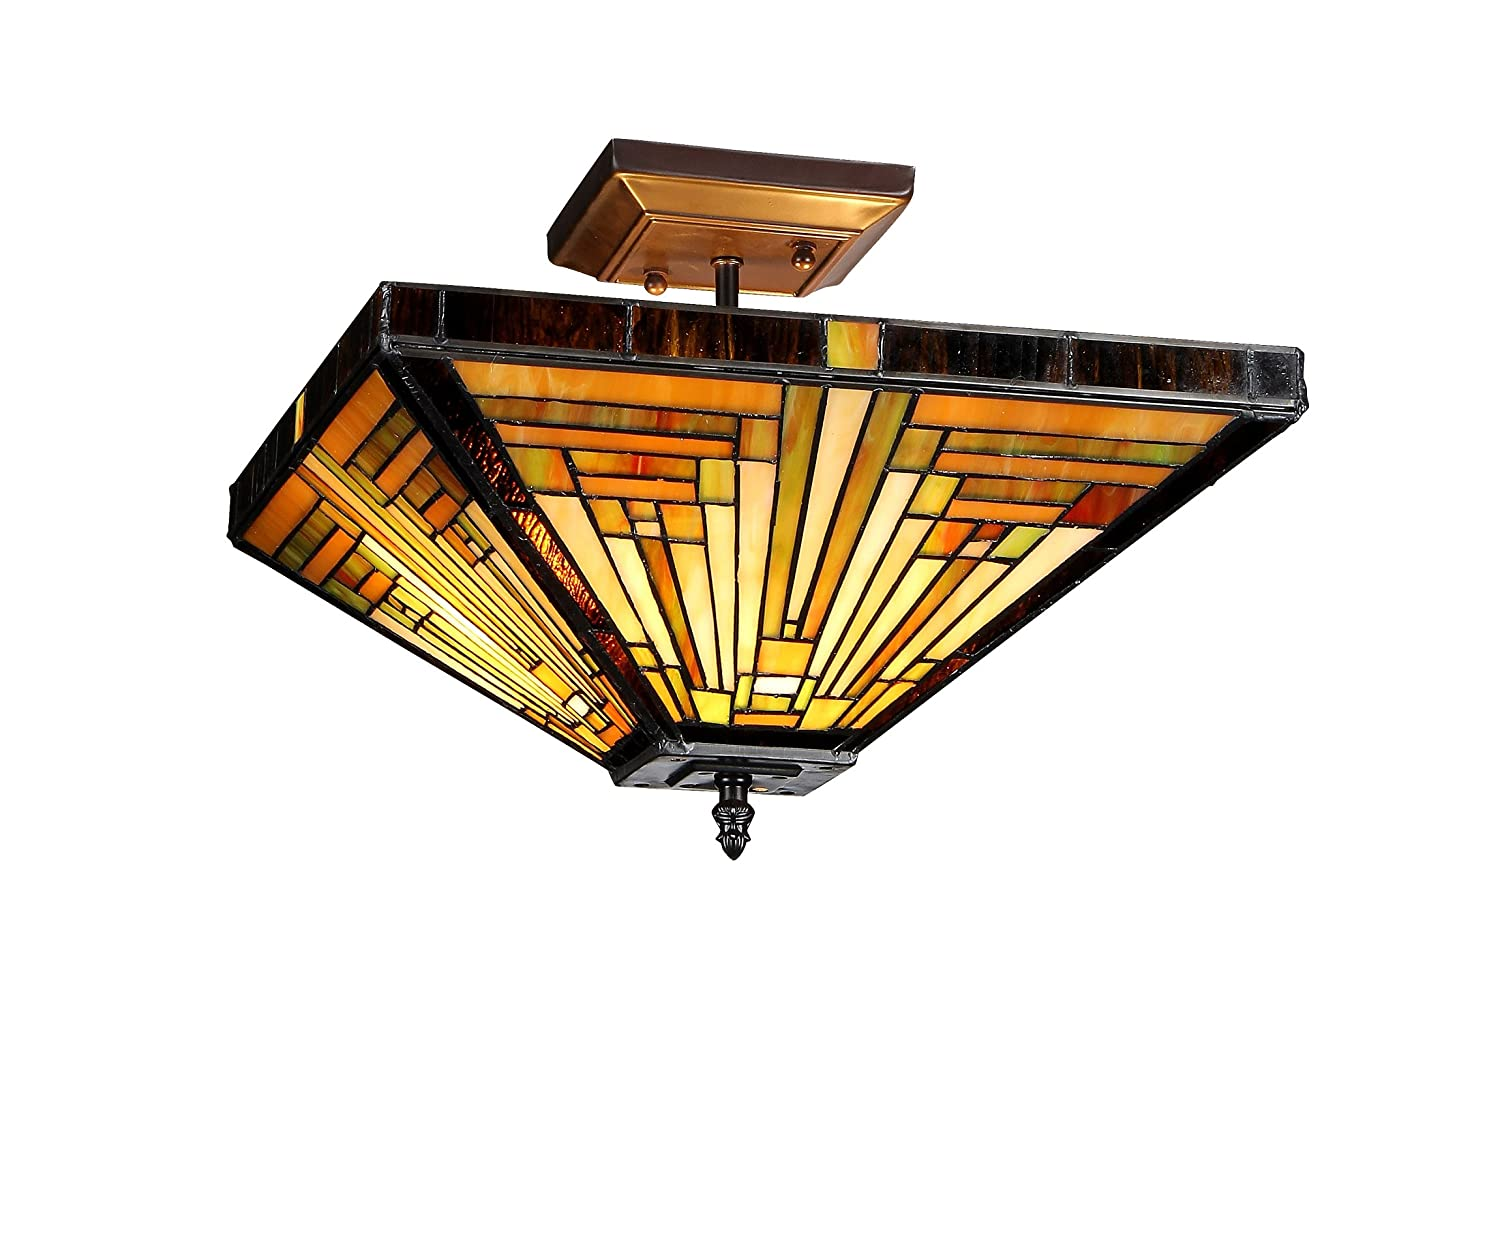 Chloe lighting chloe lighting innes 2 light tiffany style mission chloe lighting chloe lighting innes 2 light tiffany style mission semi flush ceiling fixture with 14 in shade close to ceiling light fixtures amazon aloadofball Choice Image